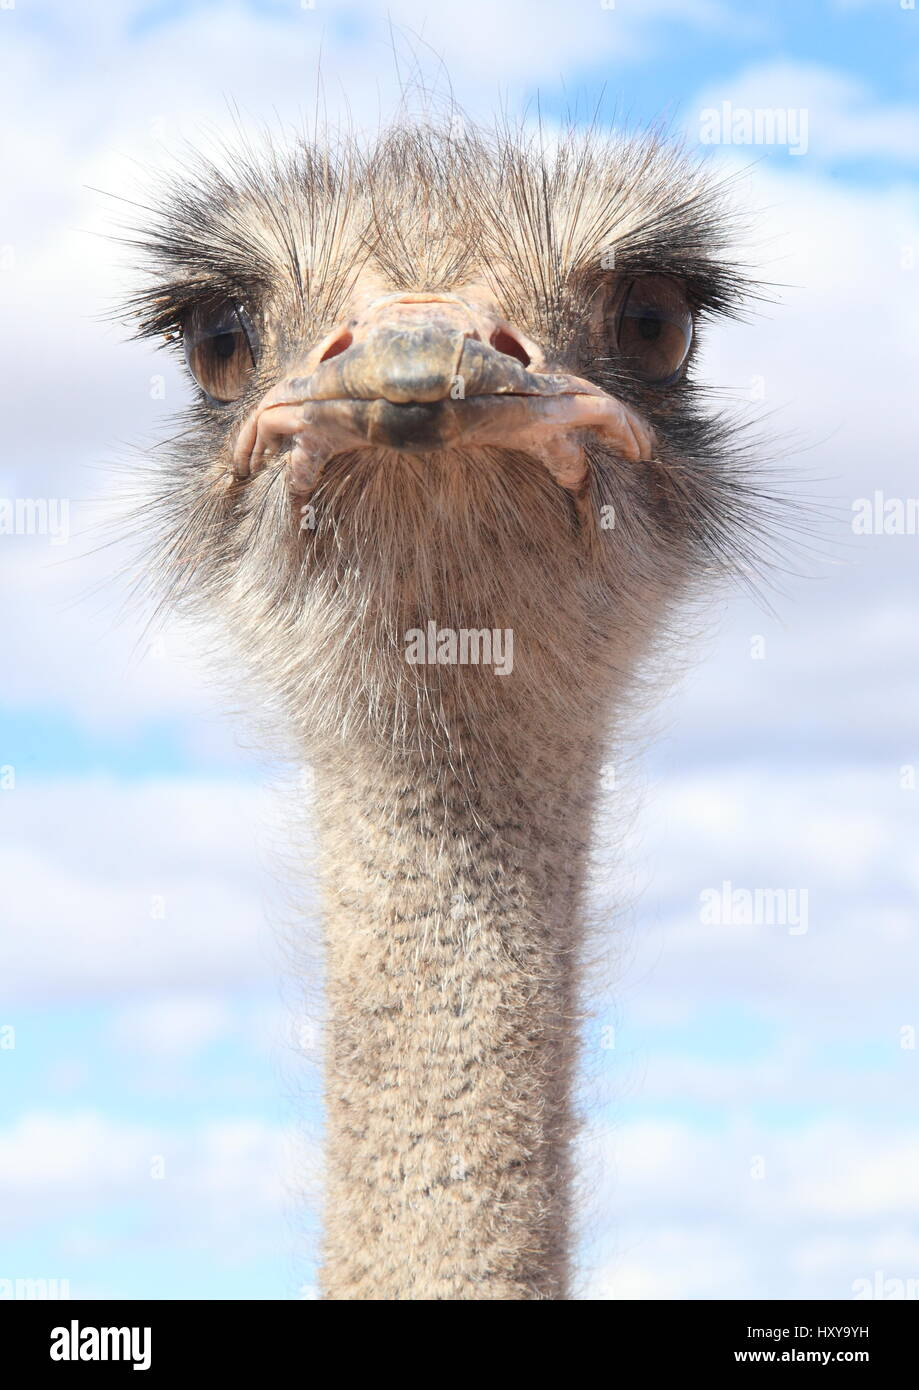 Ostriches faces - Stock Image